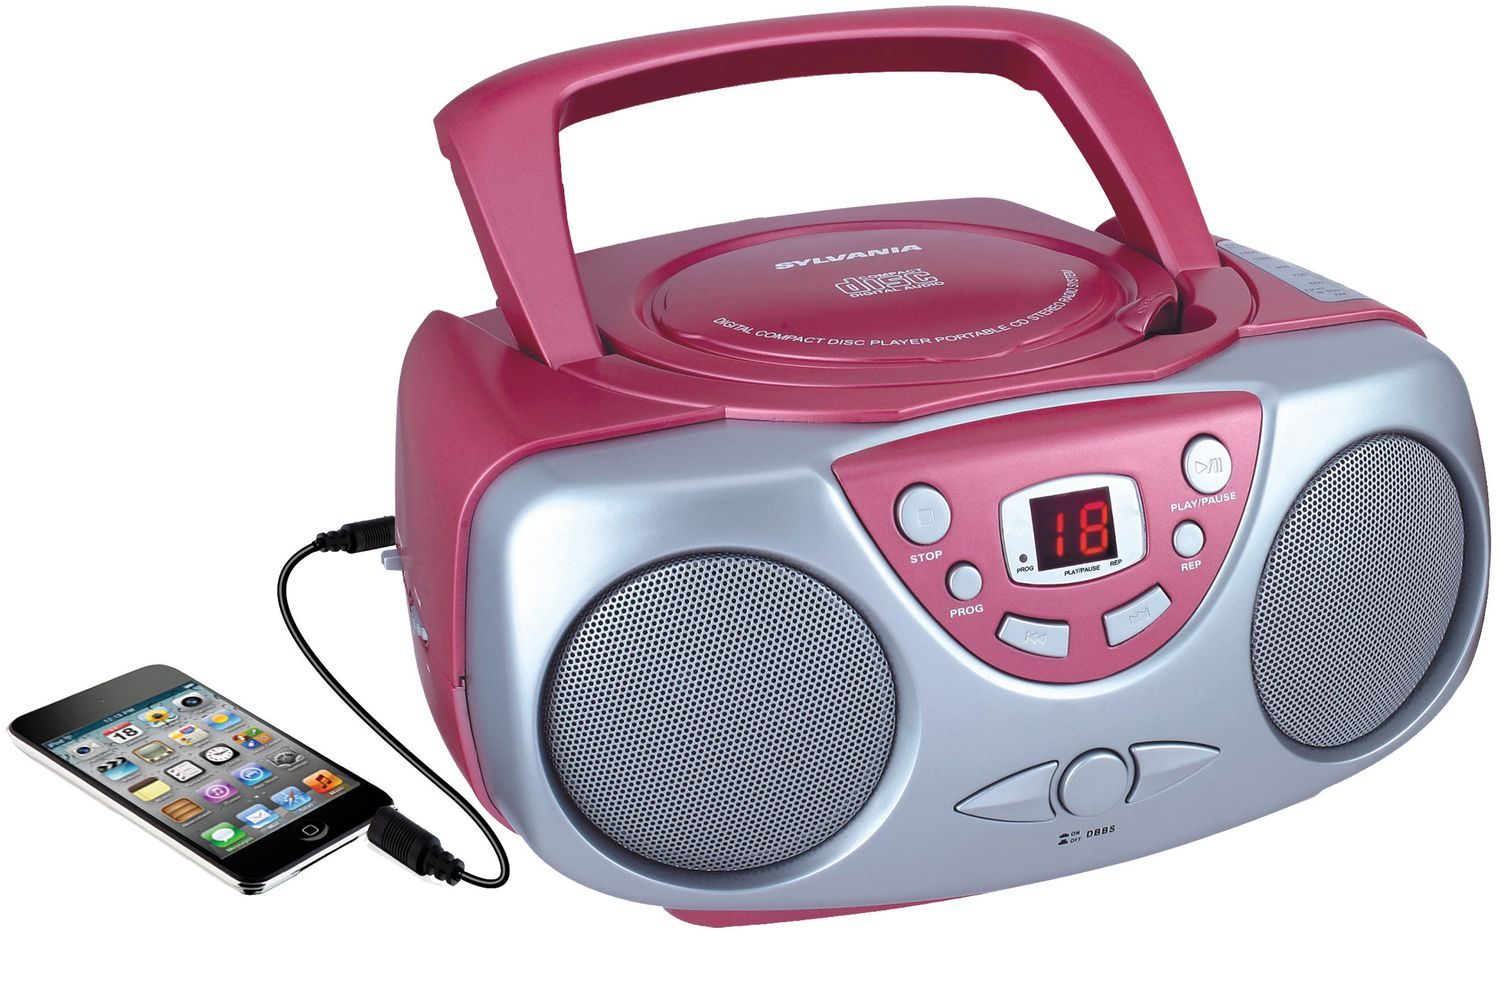 sylvania portable cd player with am fm radio pink walmart canada. Black Bedroom Furniture Sets. Home Design Ideas